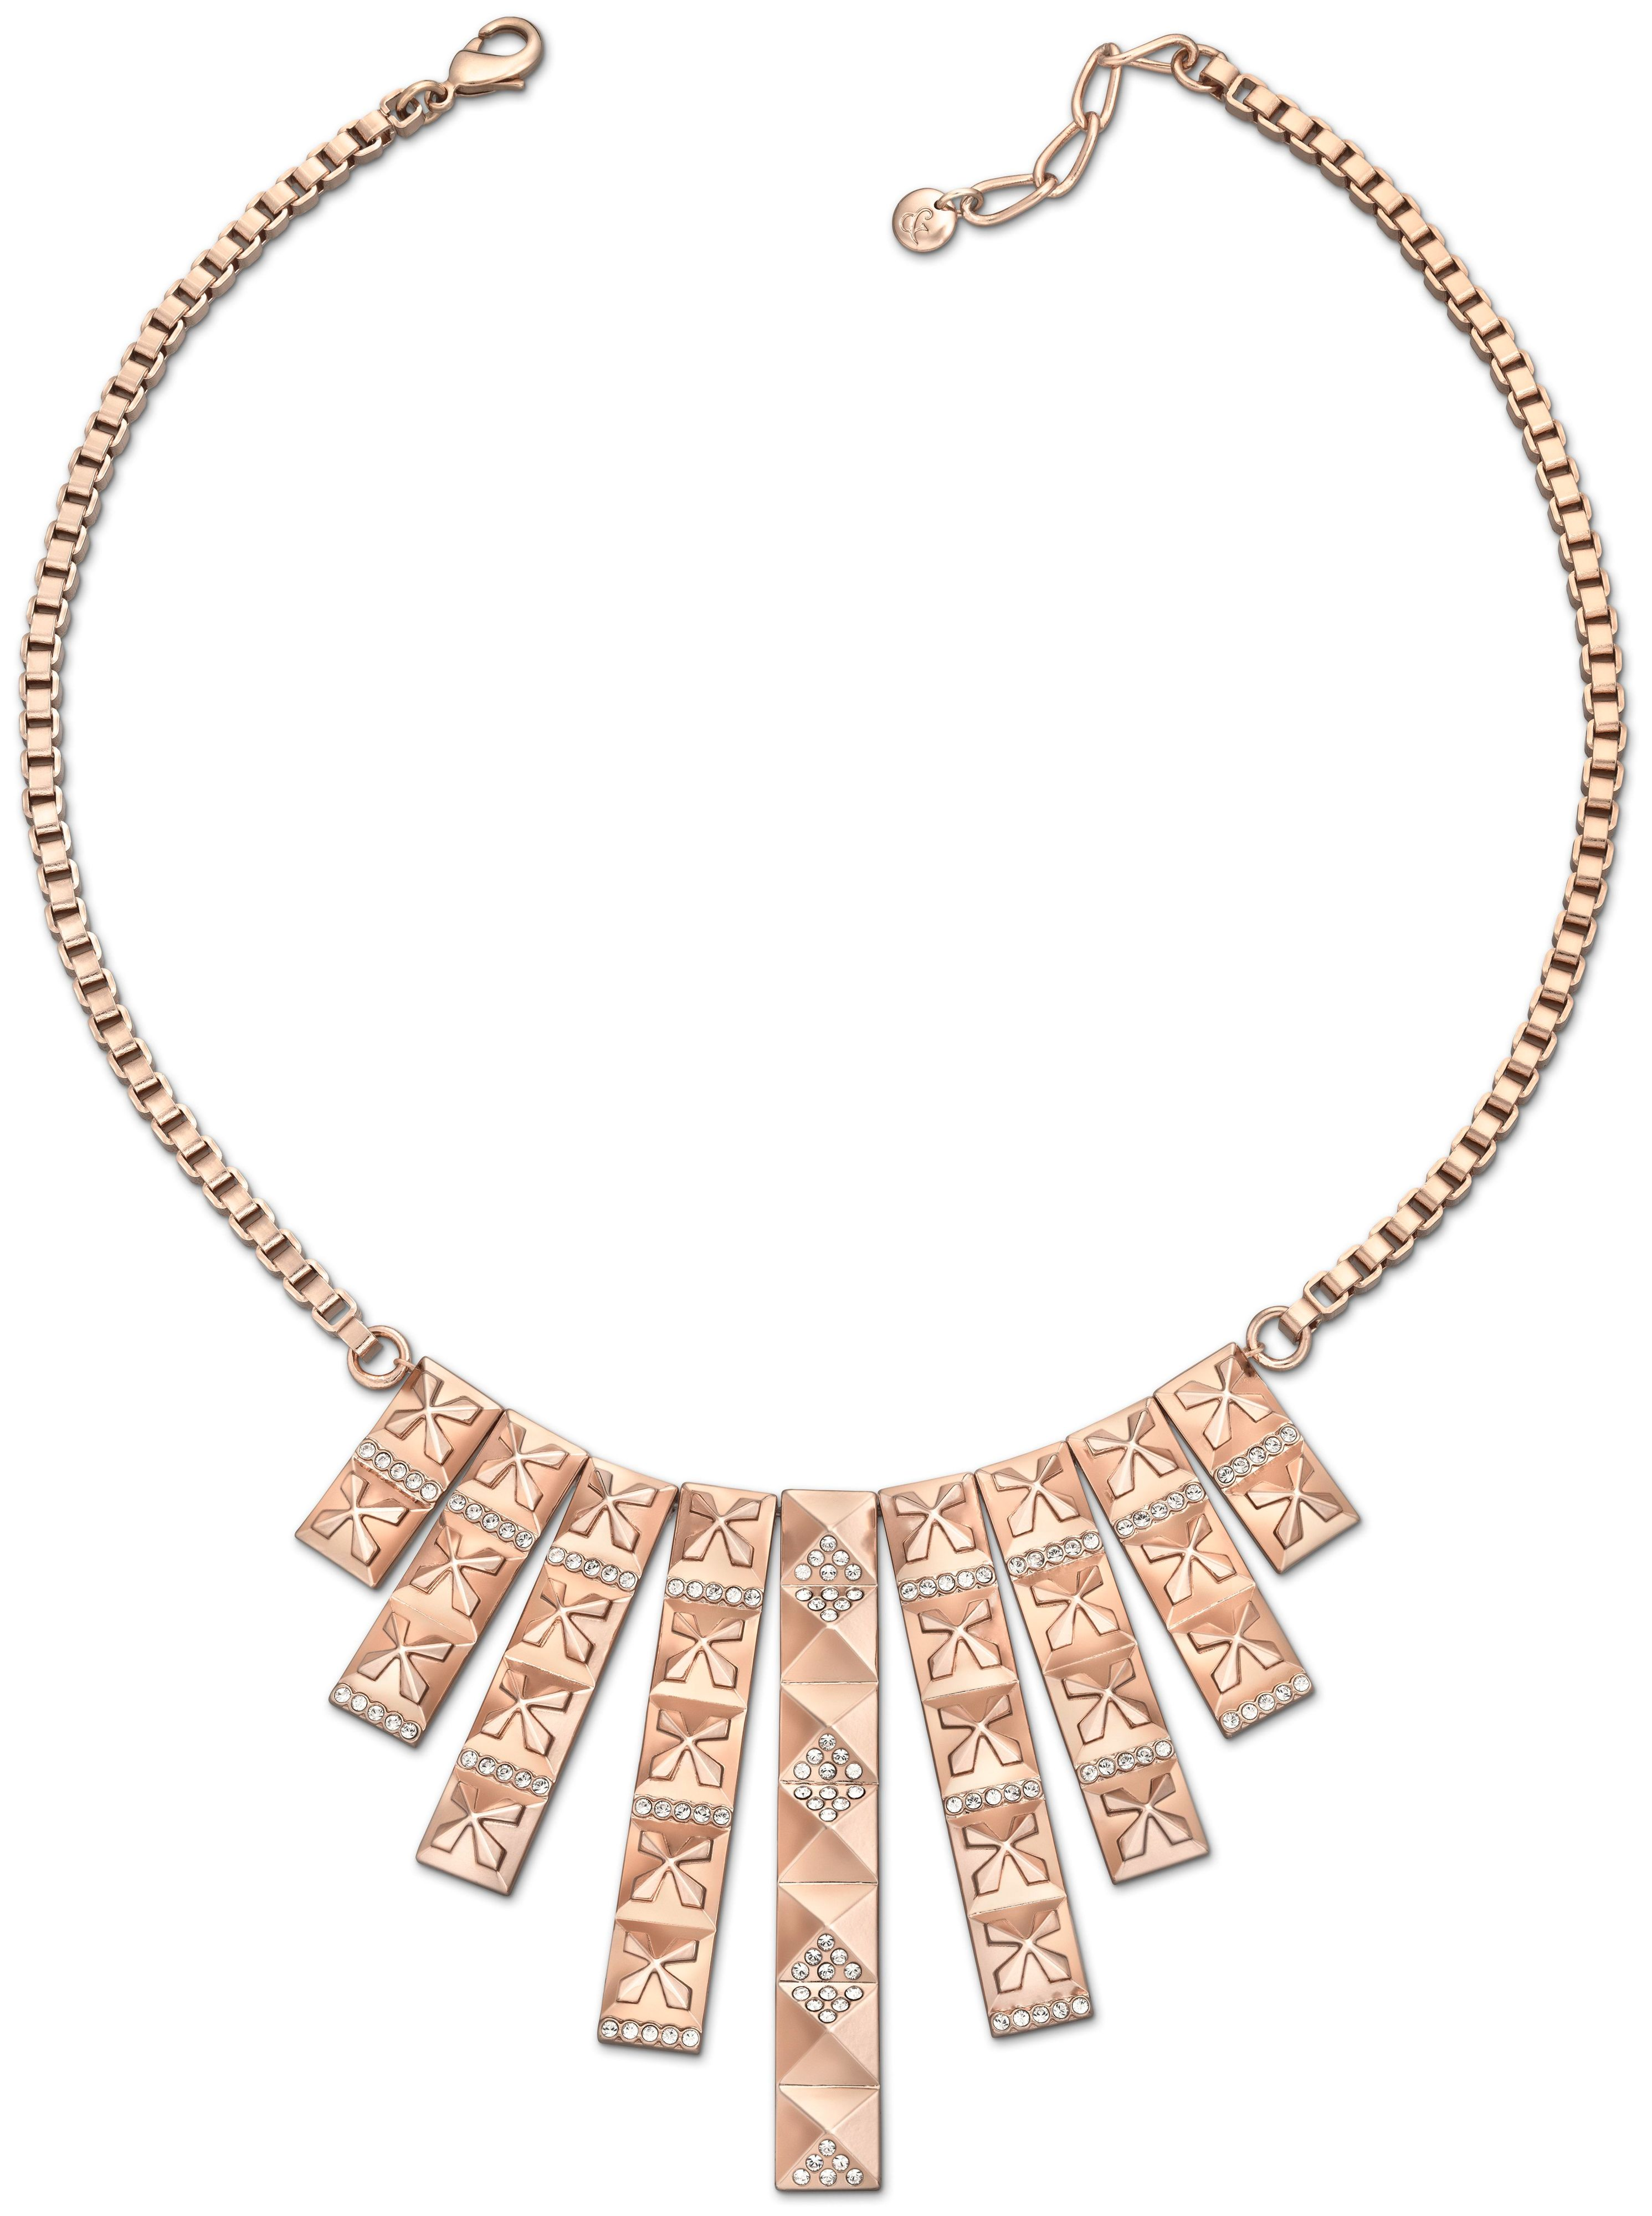 Stud bib necklace